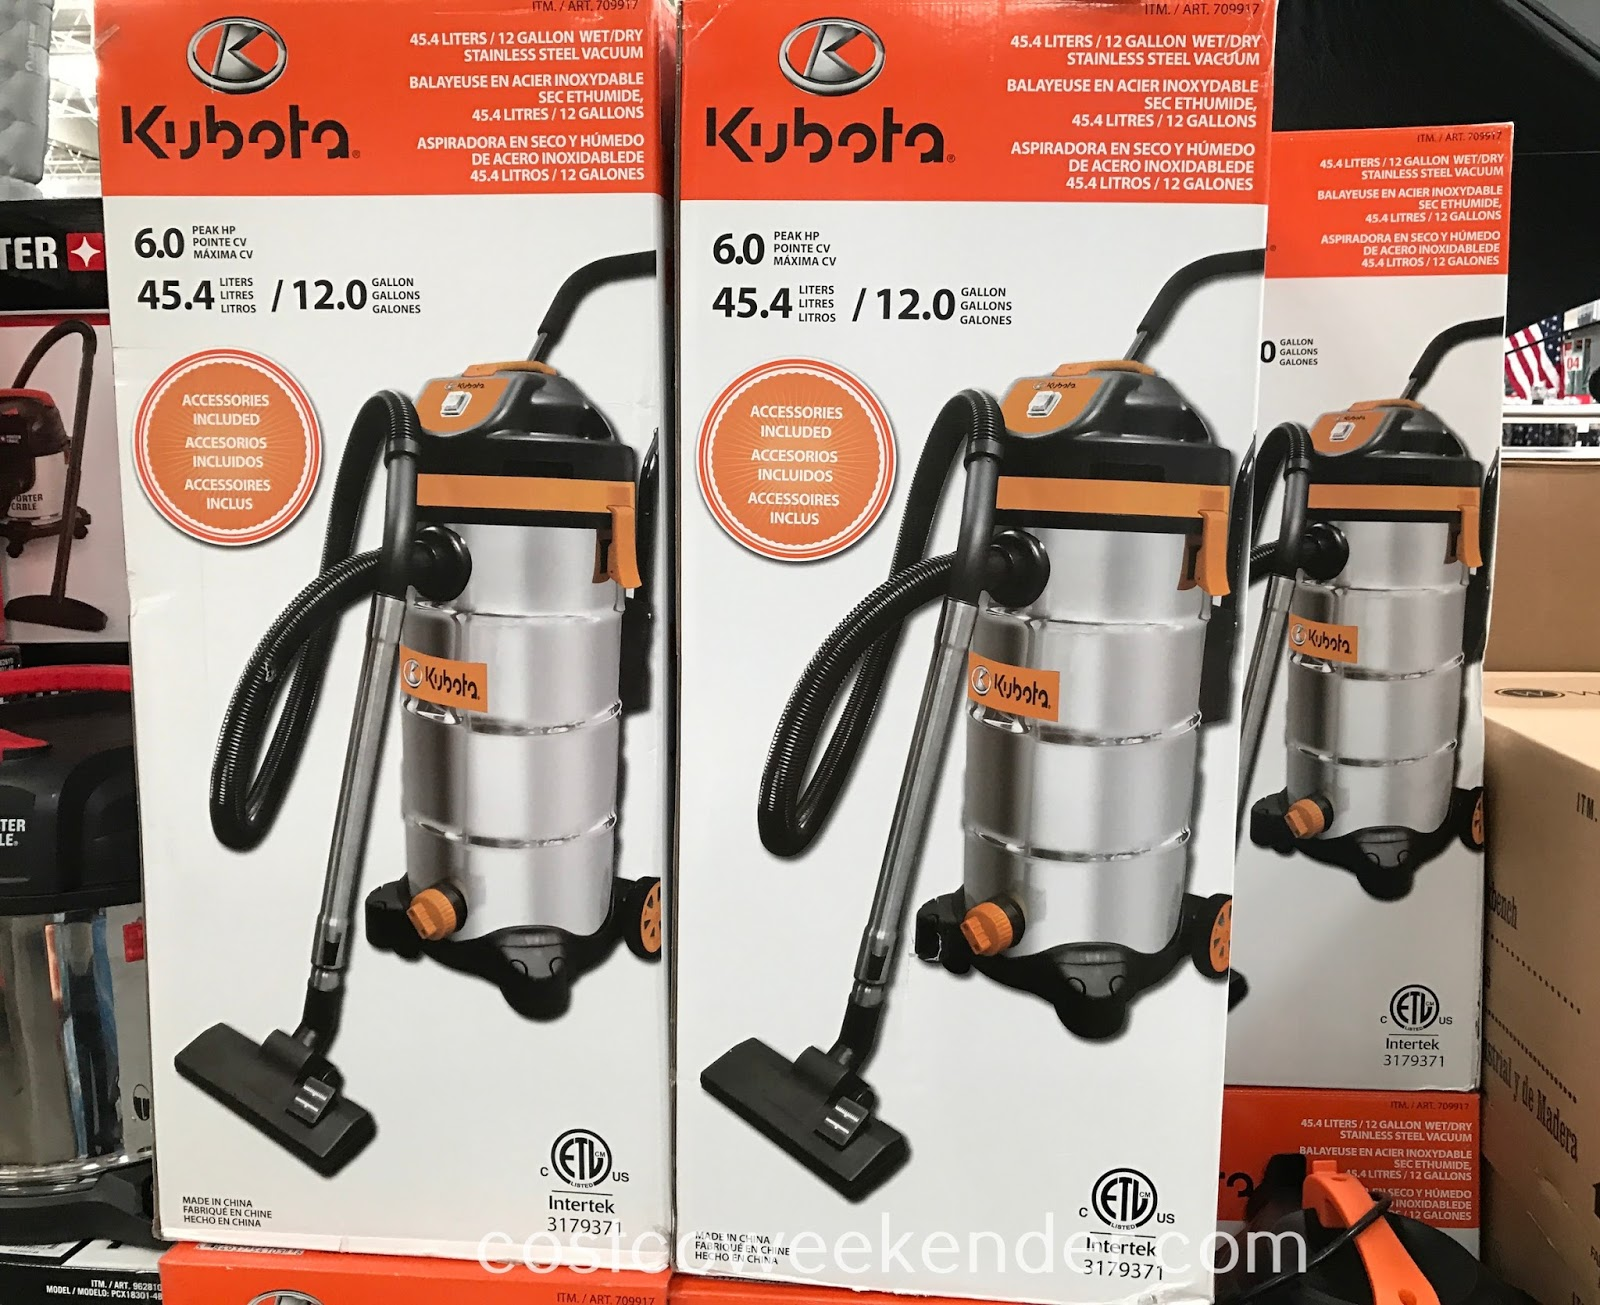 Costco 709917 - Easily clear debris in your home with the Kubota Wet/Dry Vacuum